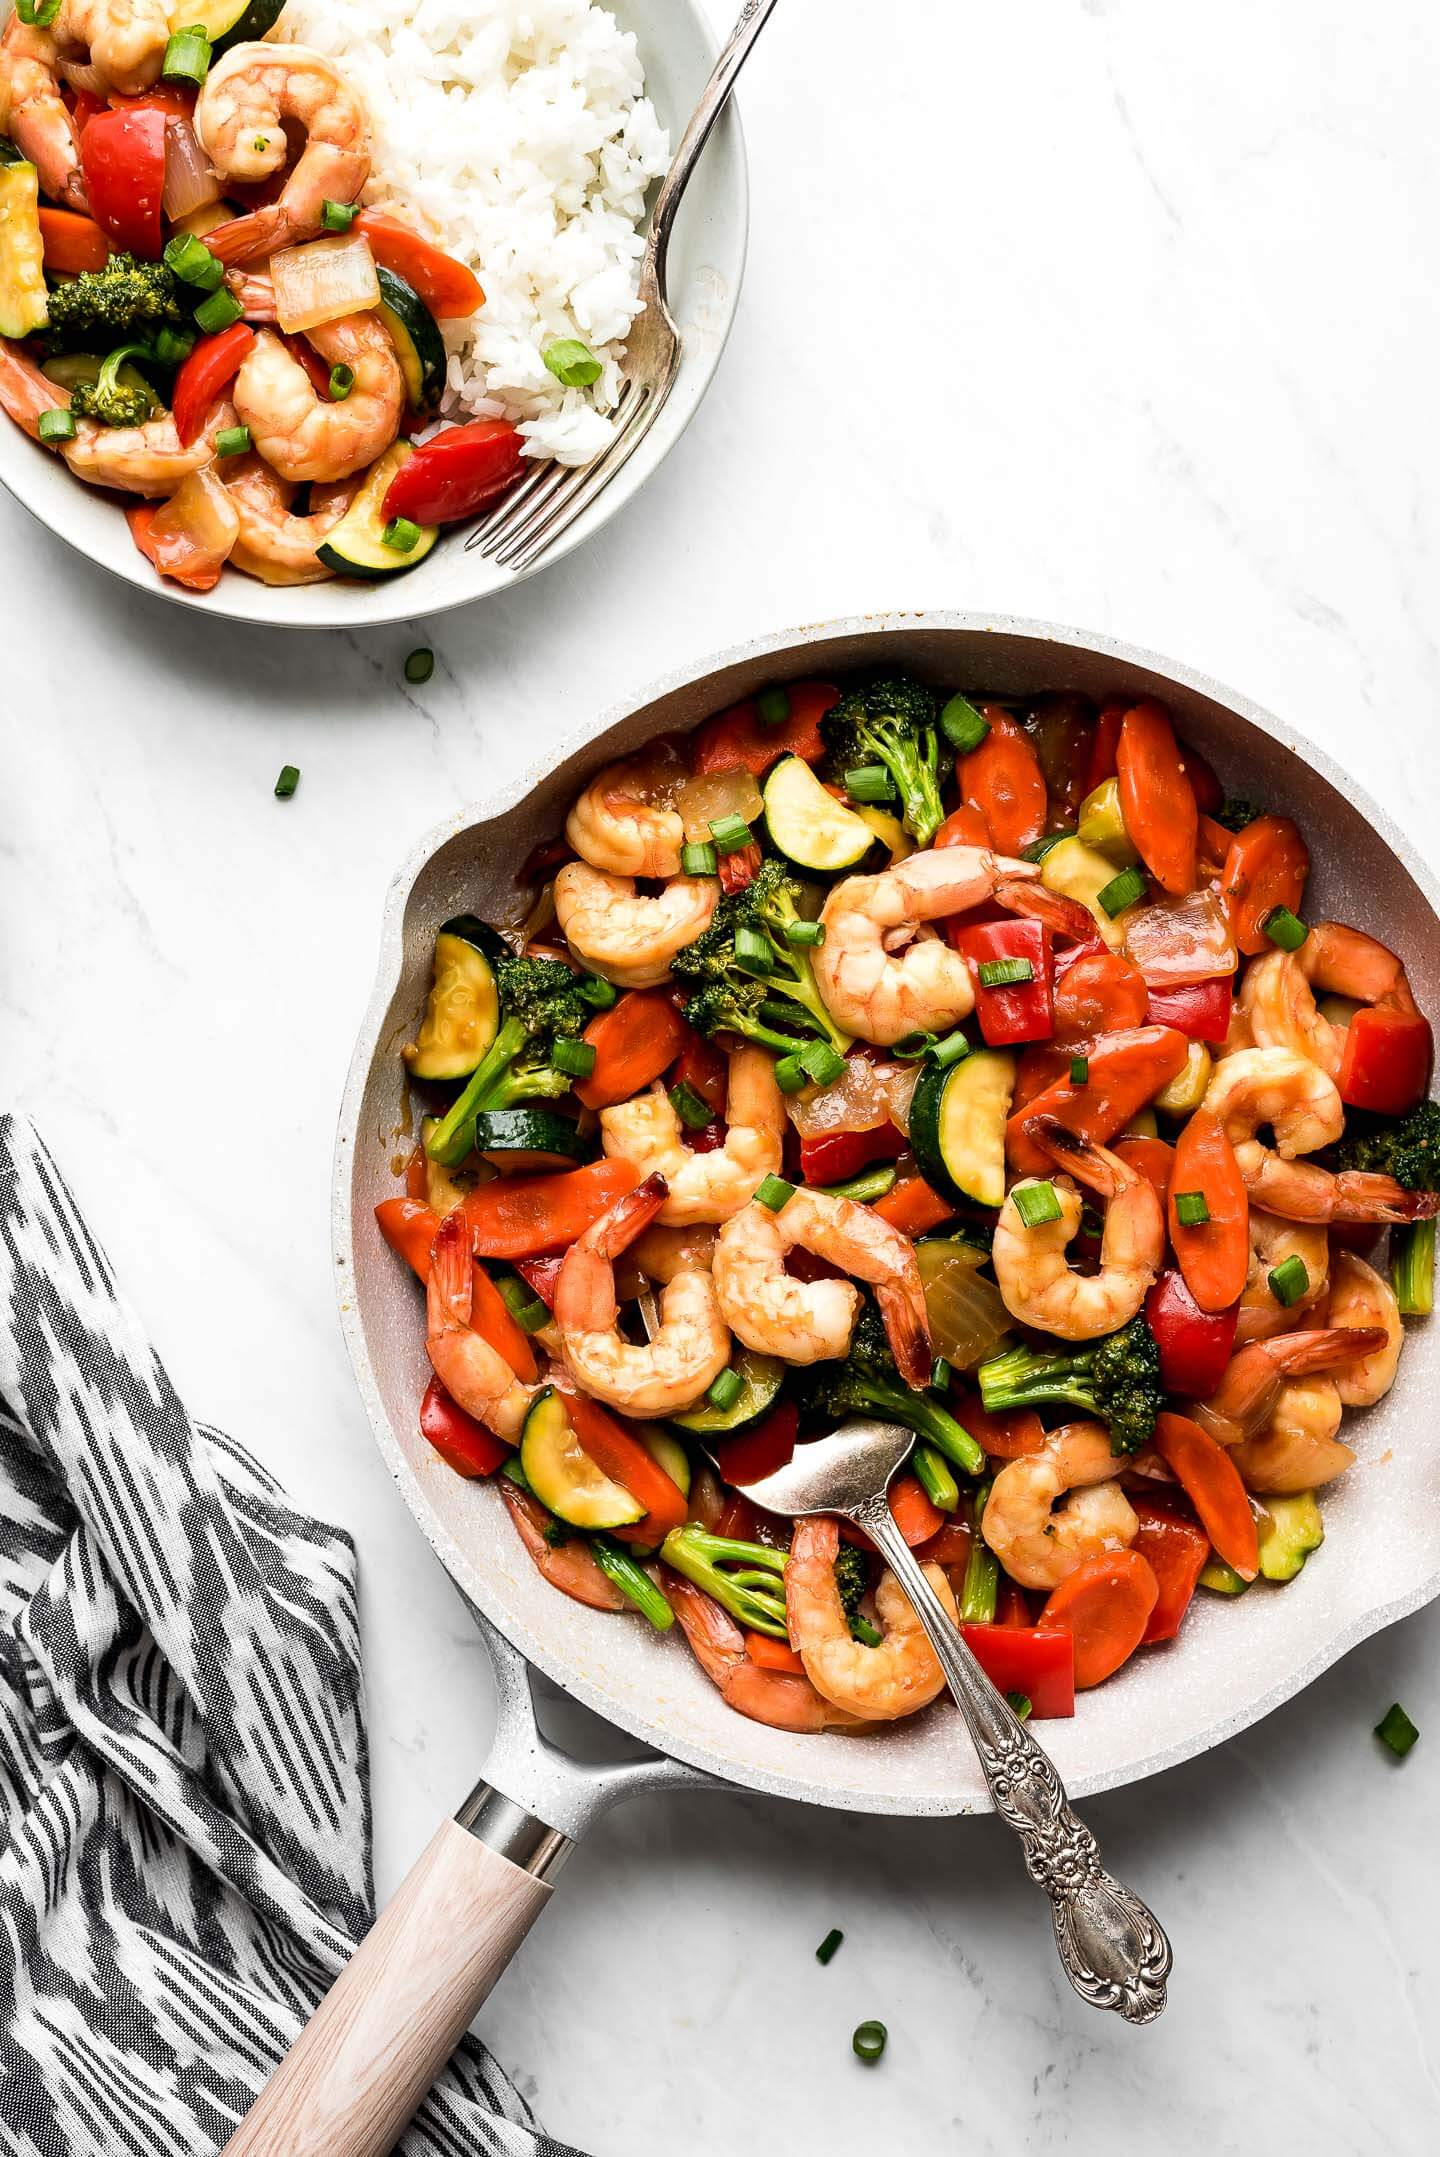 A skillet of Shrimp Stir Fry and a bowl of rice with stir fry.